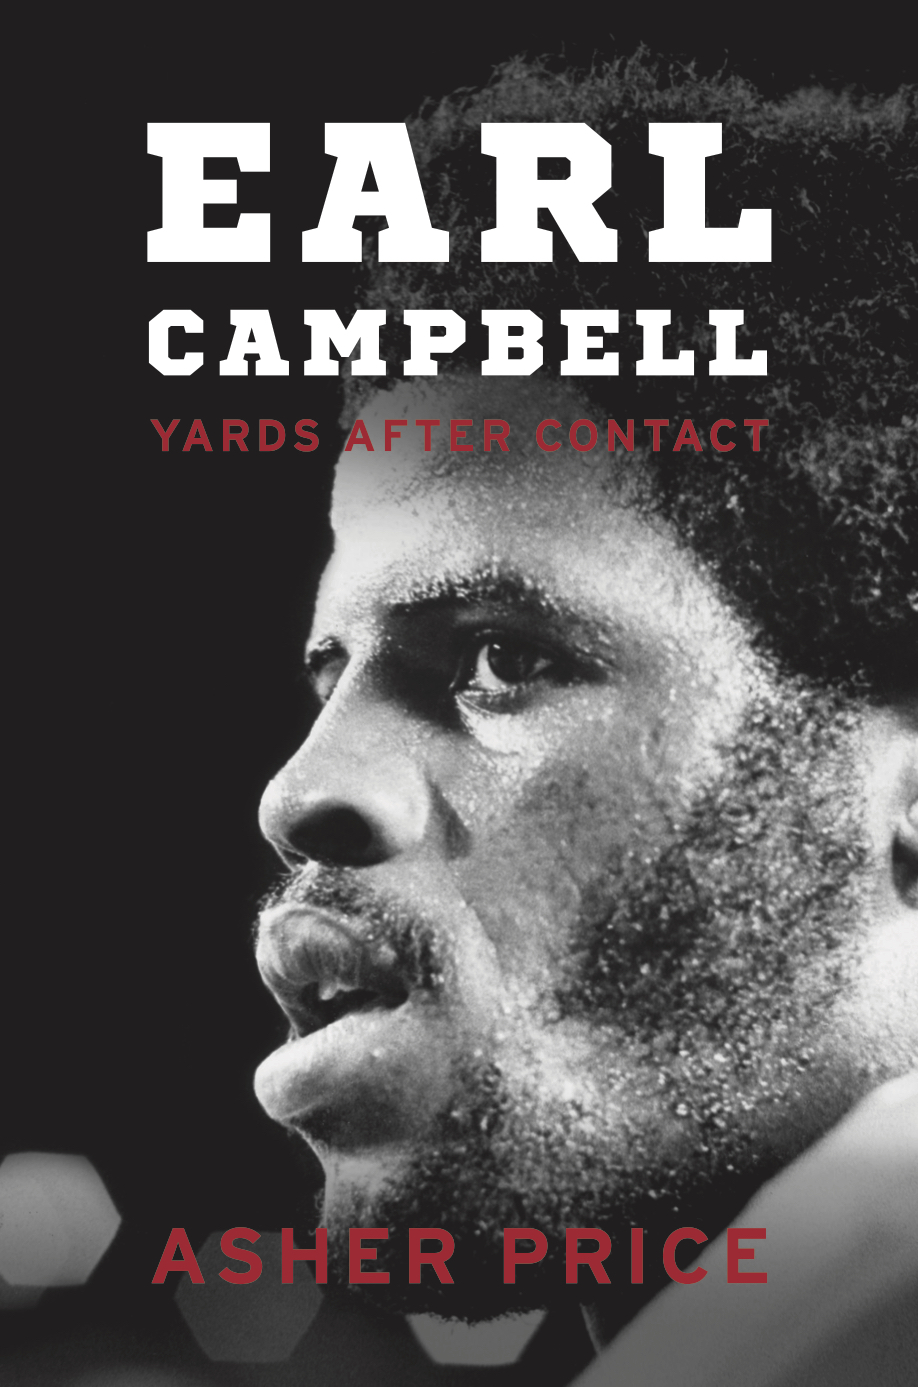 EARL CAMPBELL by Asher Price